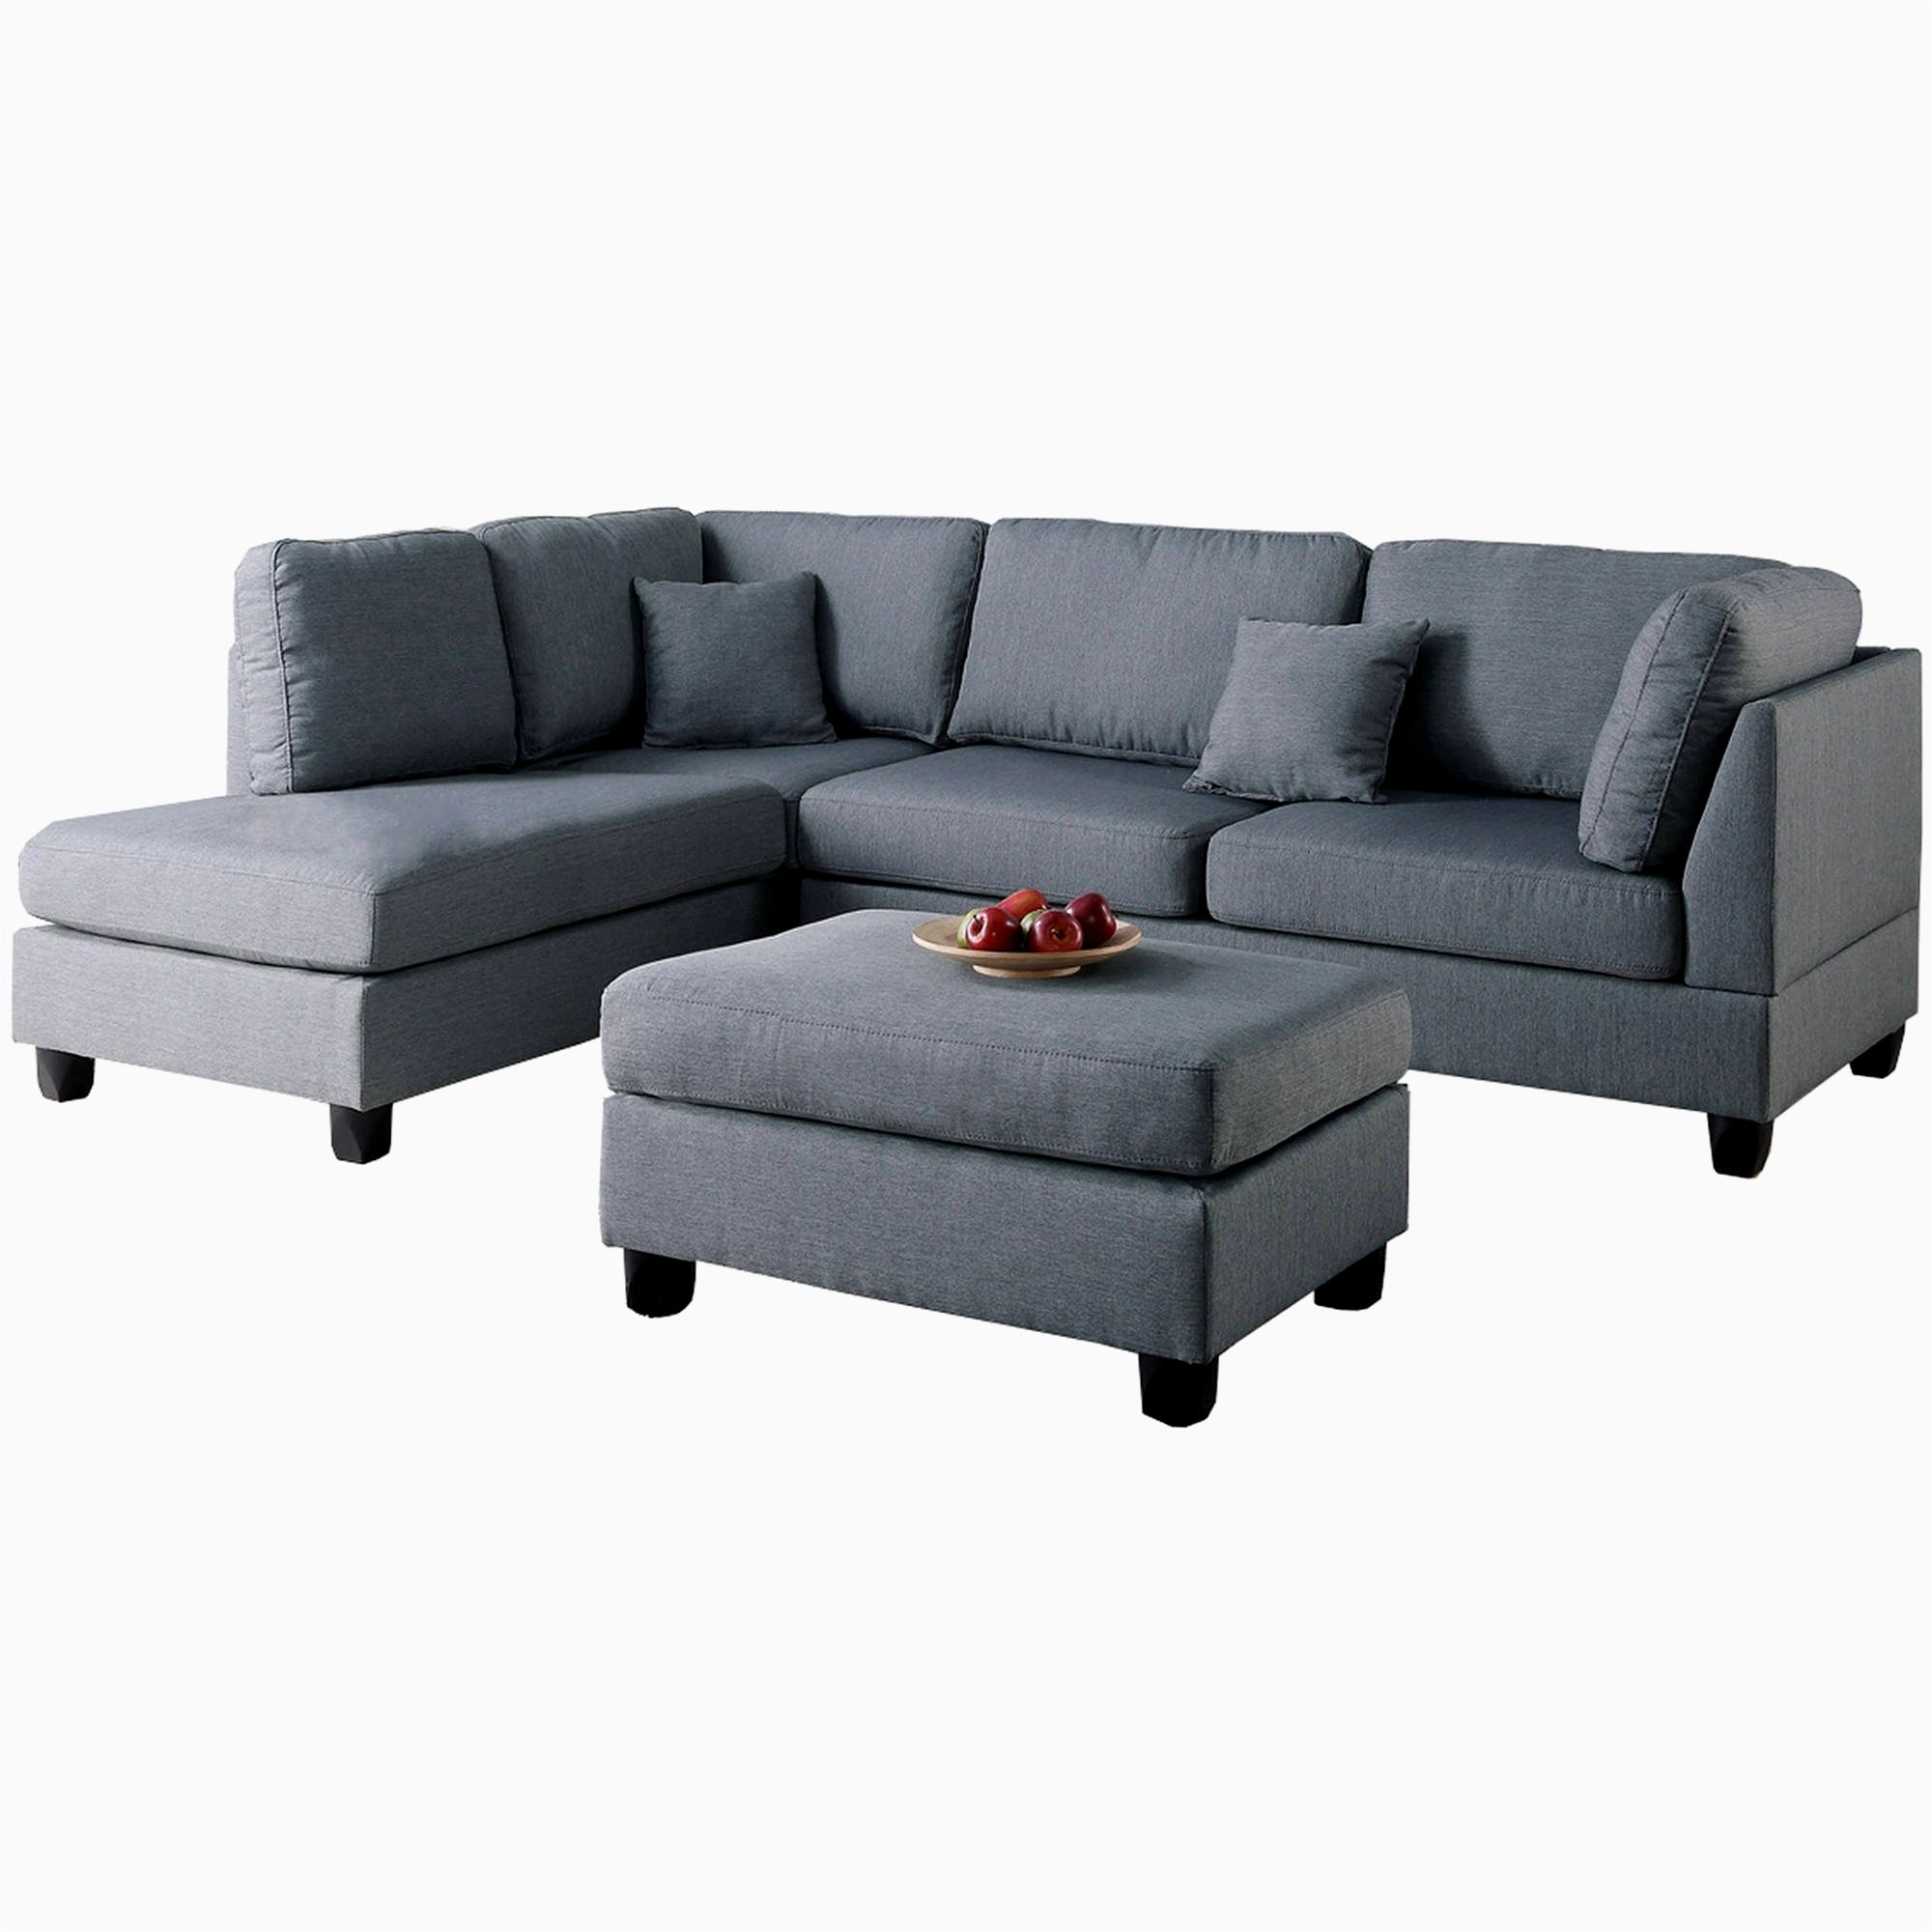 fresh sectional sofa sale photograph-Top Sectional sofa Sale Ideas